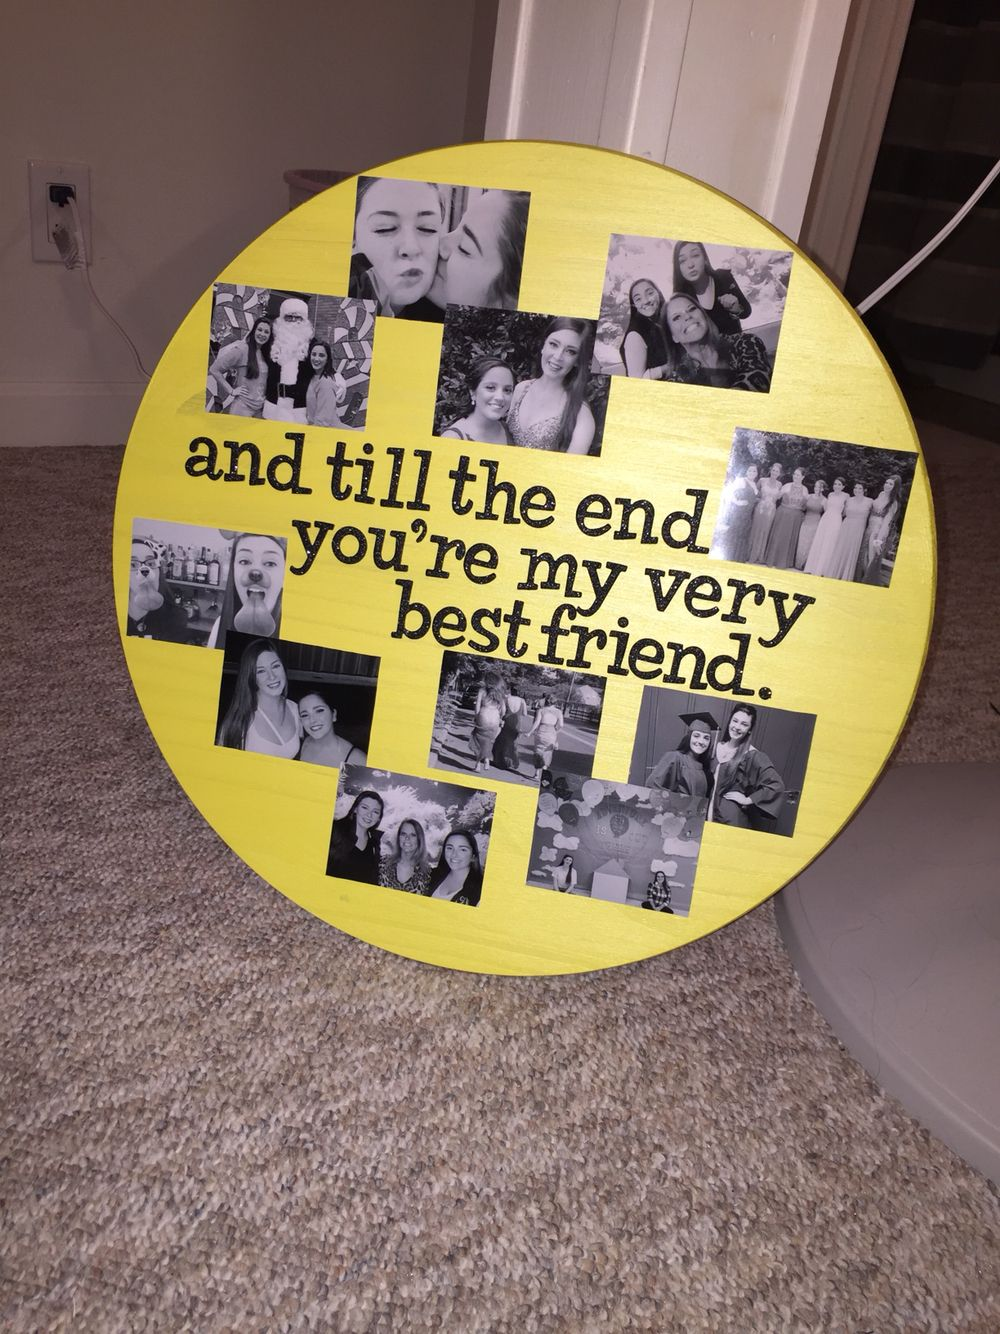 Gift for bestfriends 18th birthday gifts pinterest for Friend birthday gift ideas diy